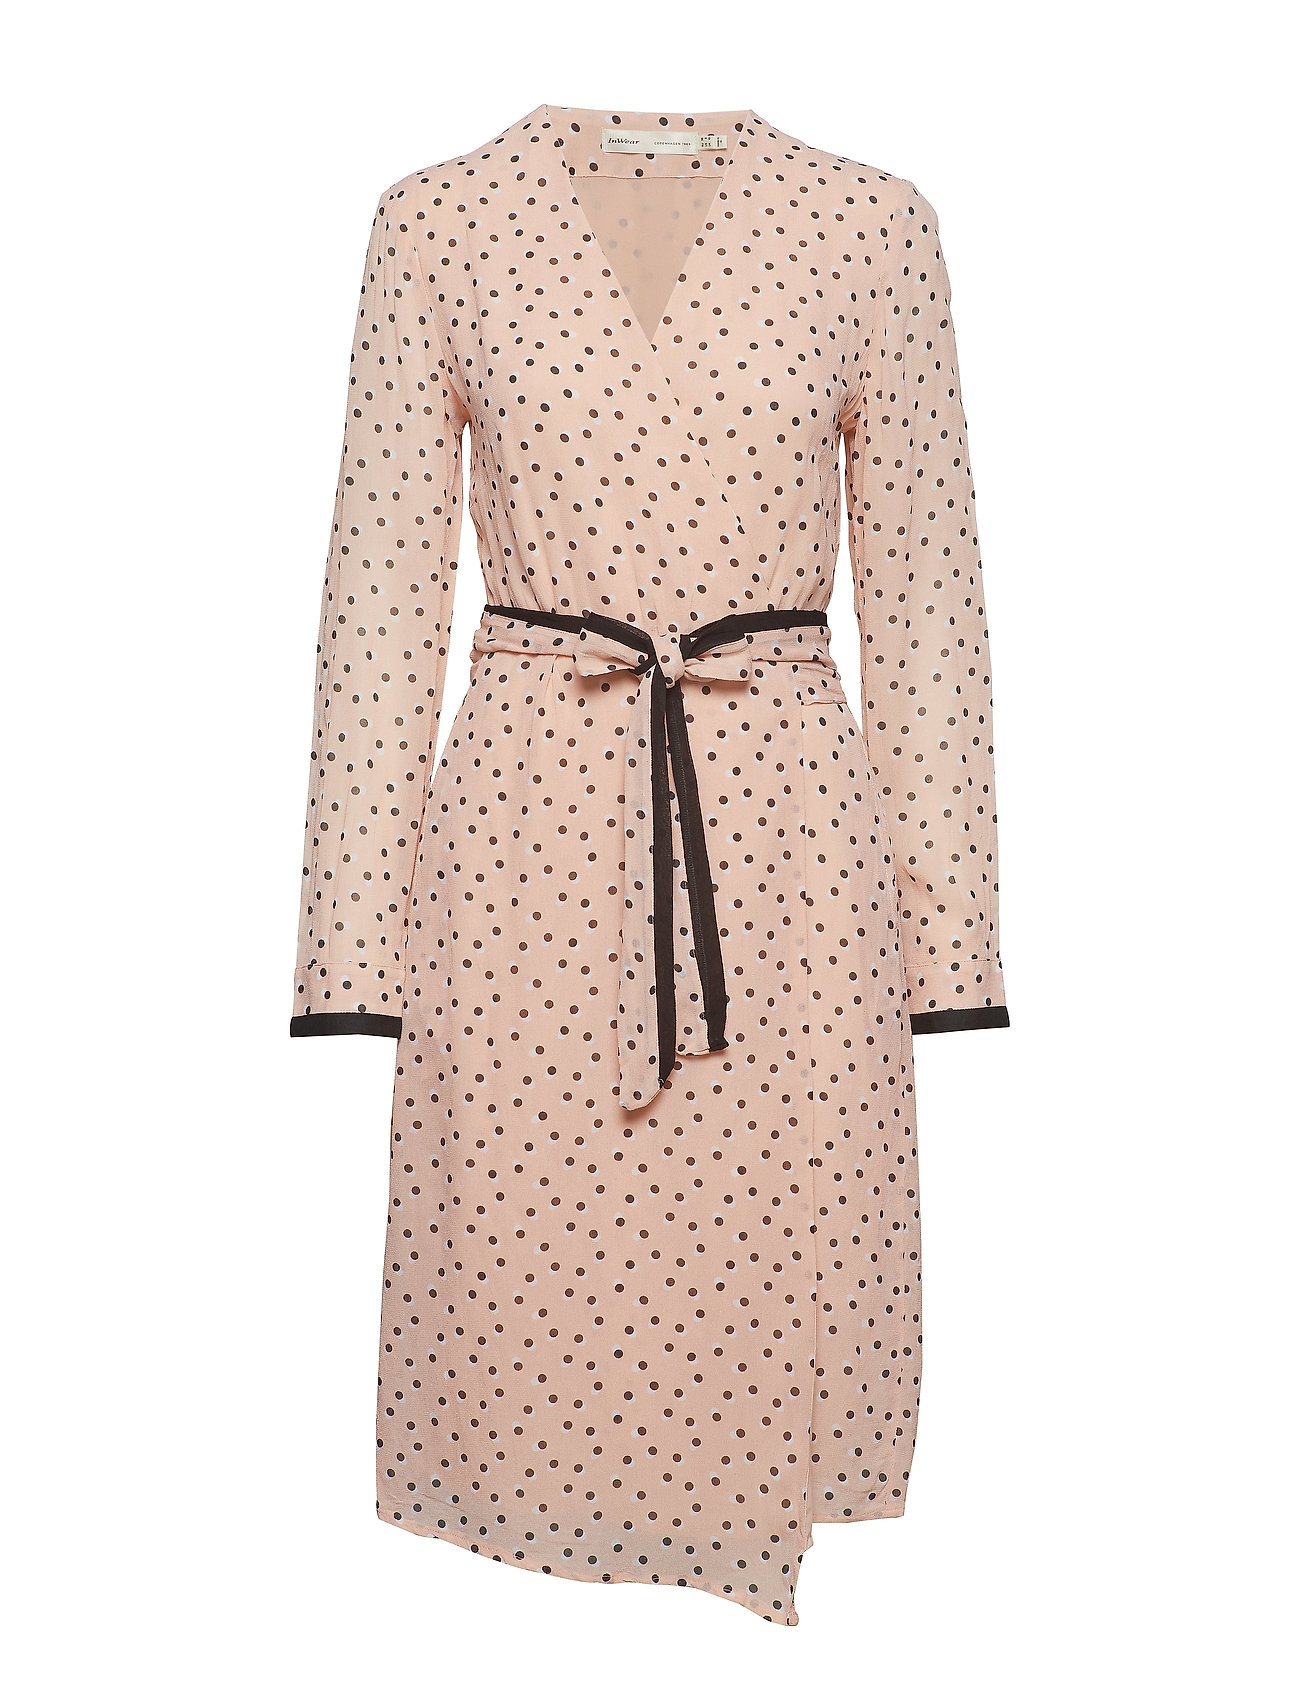 2e2dbeff4482 Hester Dress (Rose Dust Double Dot) (£47.50) - InWear - | Boozt.com